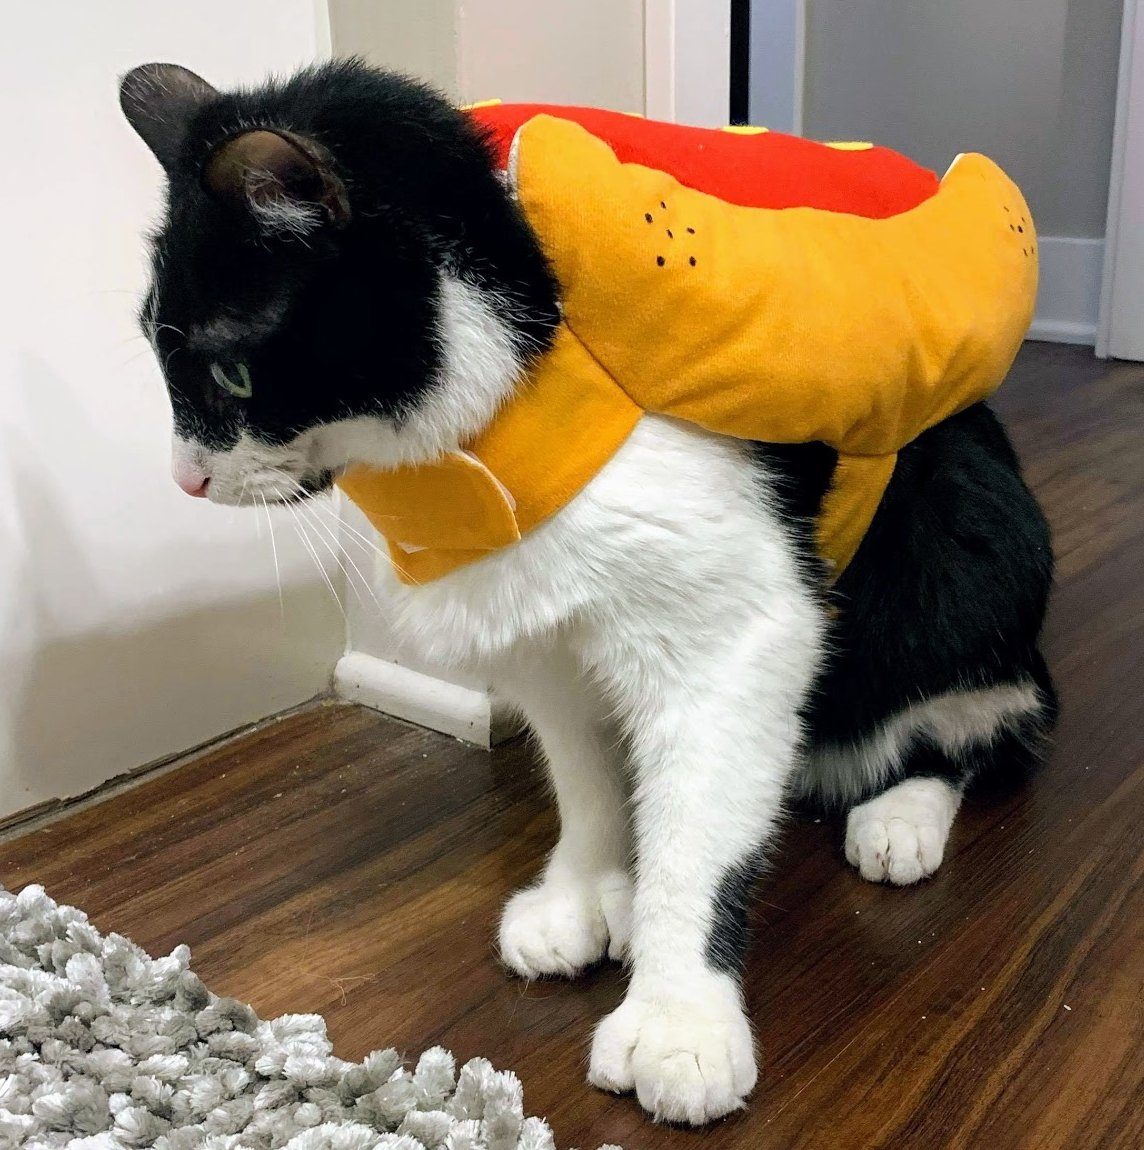 We didn't get the memo that yesterday was #NationalDressUpYourPetDay, so here's a photo of the social media manager's cat dressed up at home as a hot dog for Halloween to make up for it. 😼  (he was not a fan and the costume came off immediately after the photo was taken)